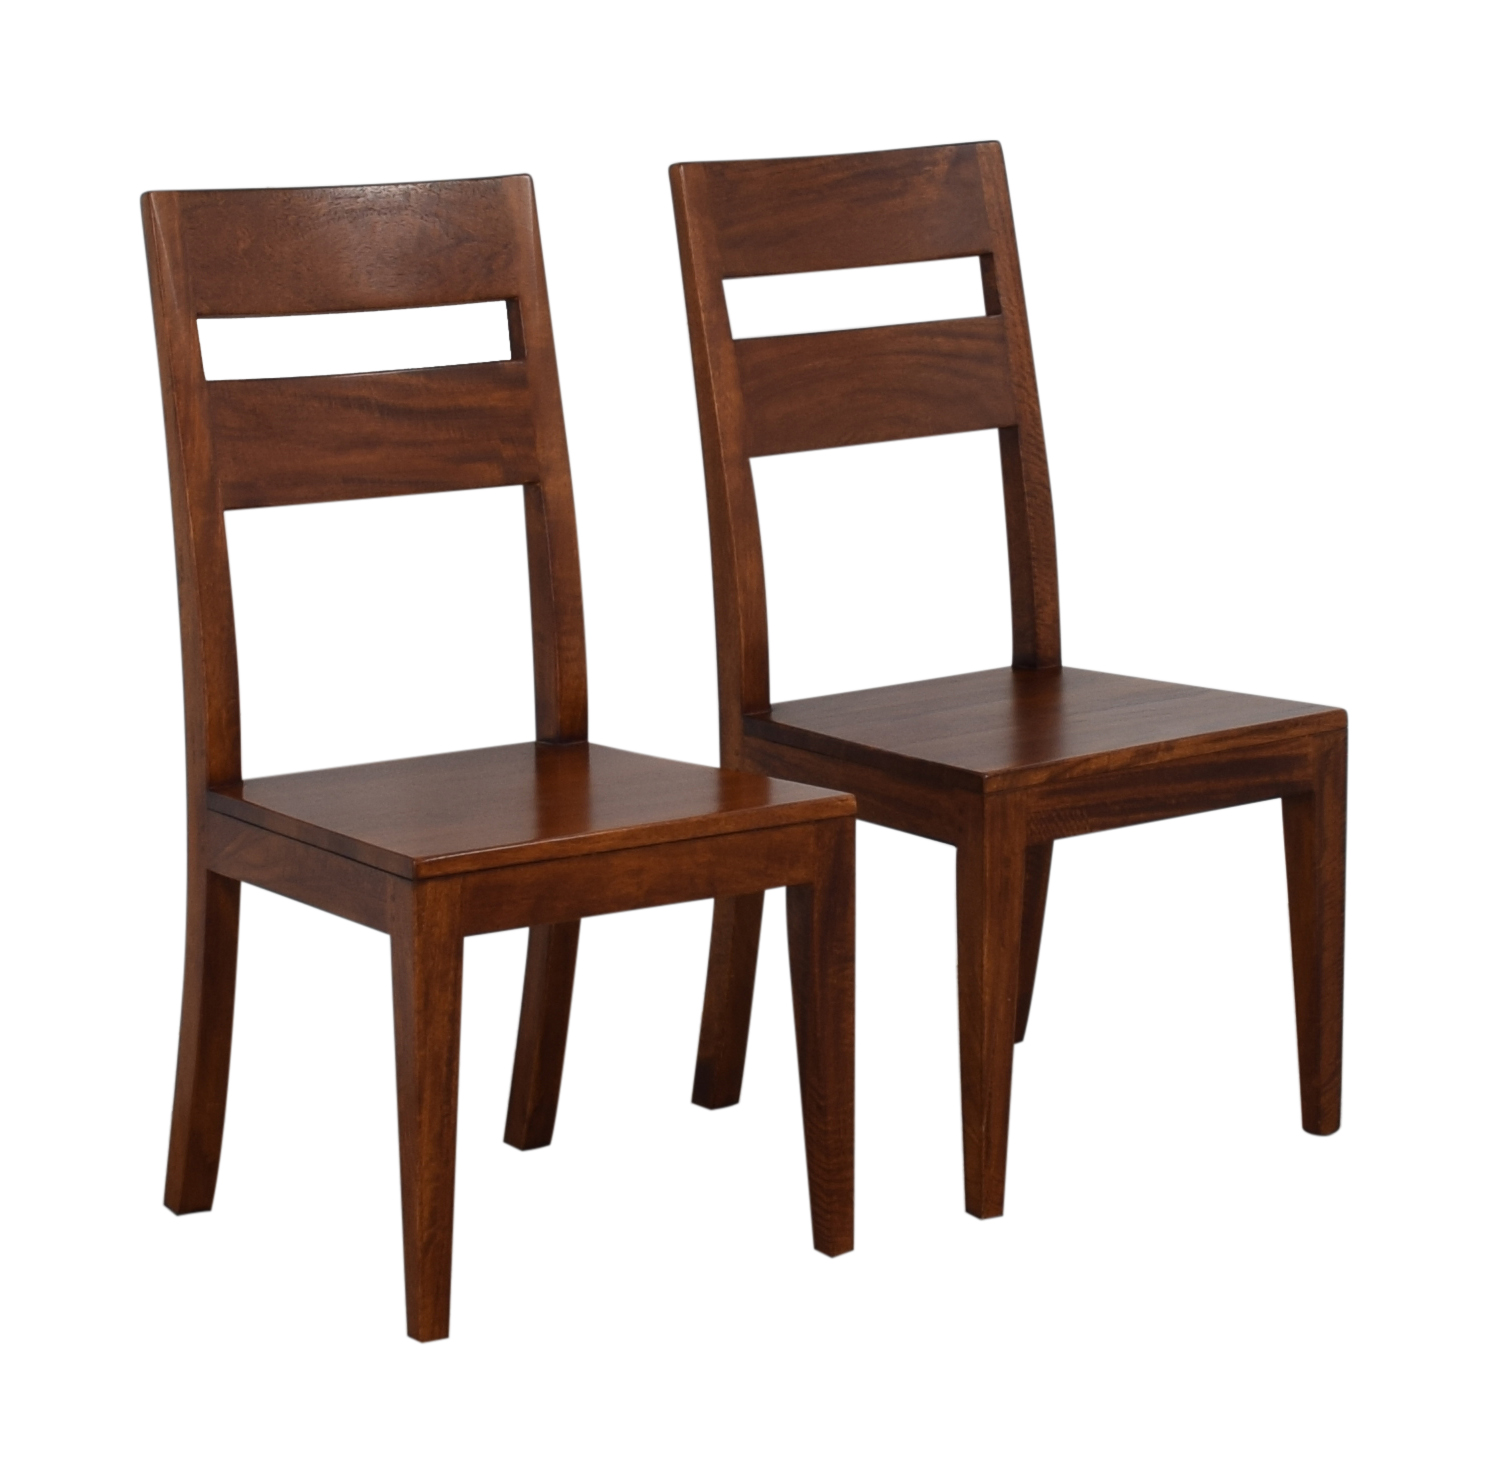 buy Crate & Barrel Basque Honey Wood Dining Chairs Crate & Barrel Chairs